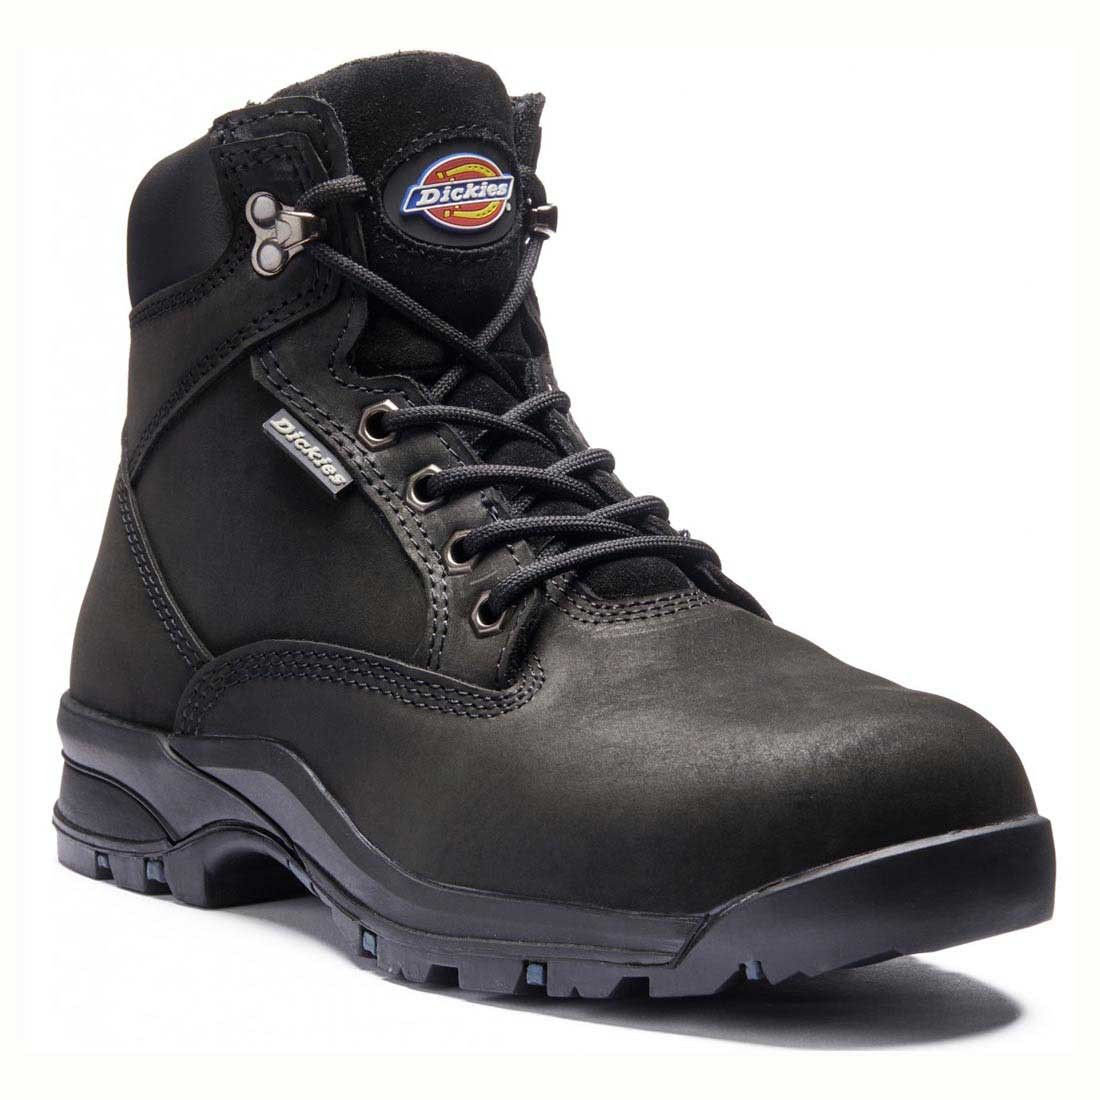 dca5e9c571fb Dickies Ladies Fit Corbett Black Leather Water Resistant Safety Boots